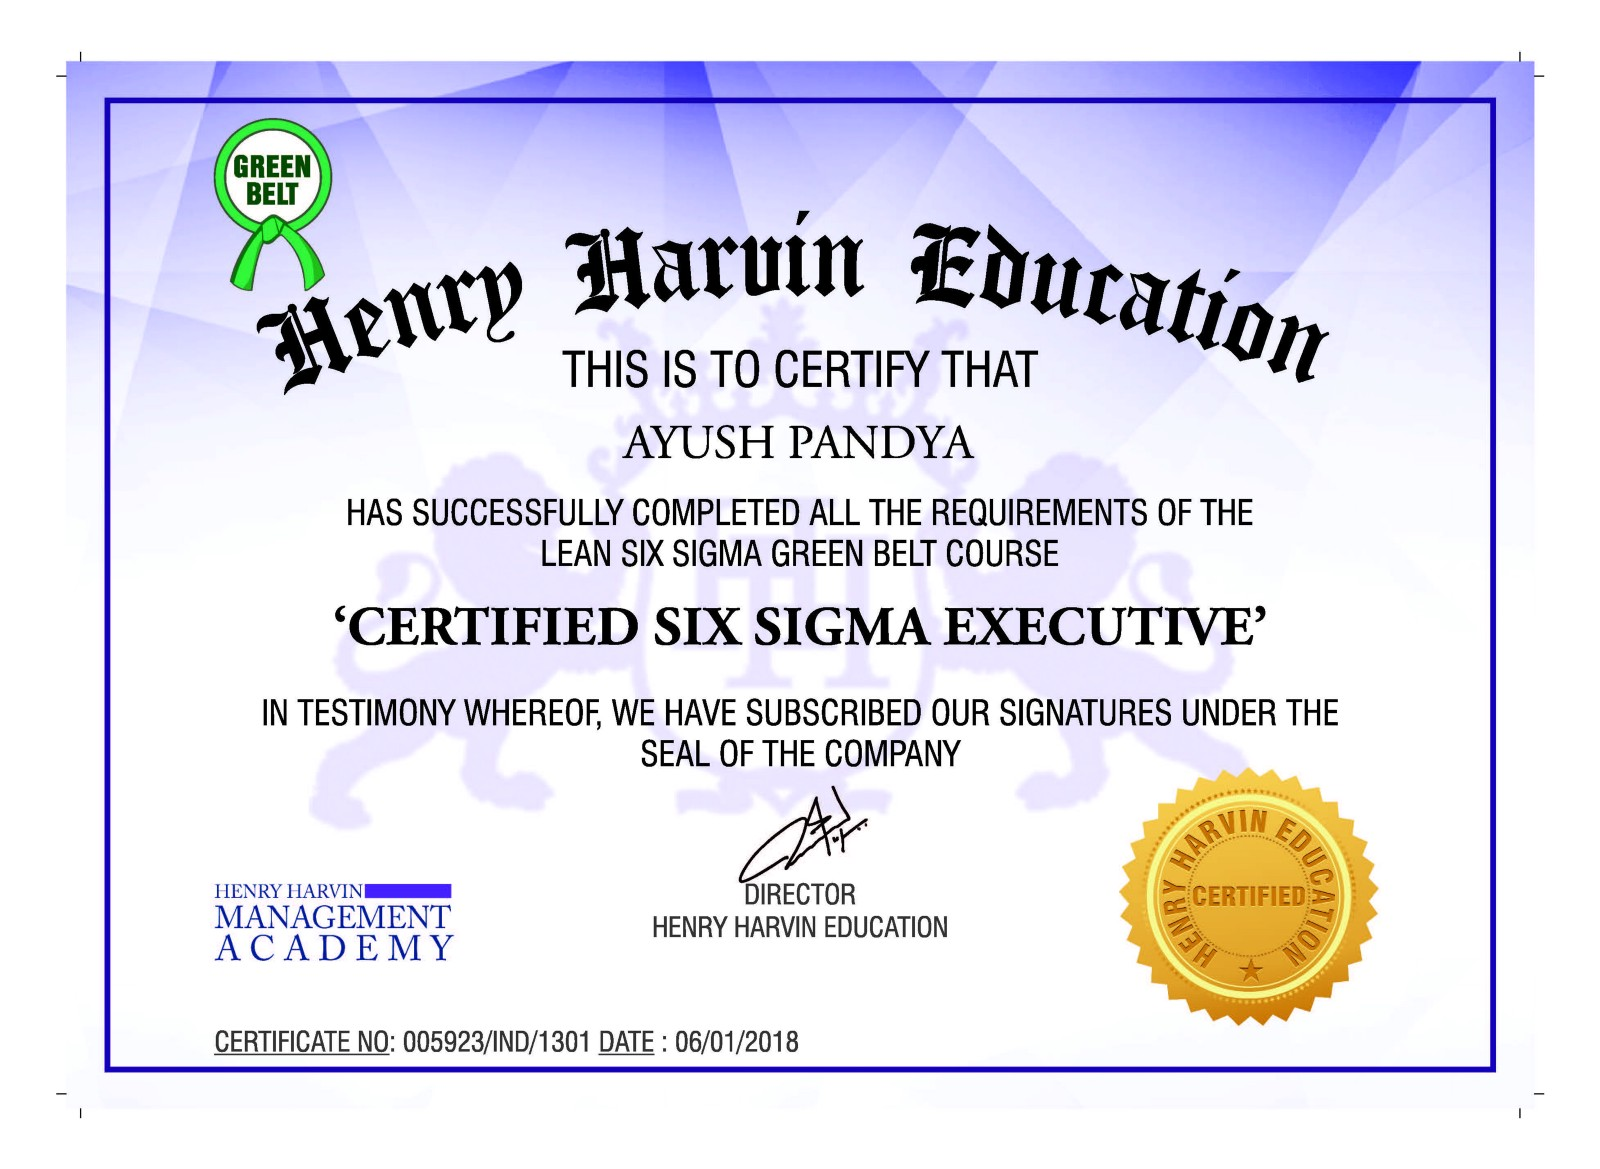 6 Sigma Certification Online Henry Harvin Medium